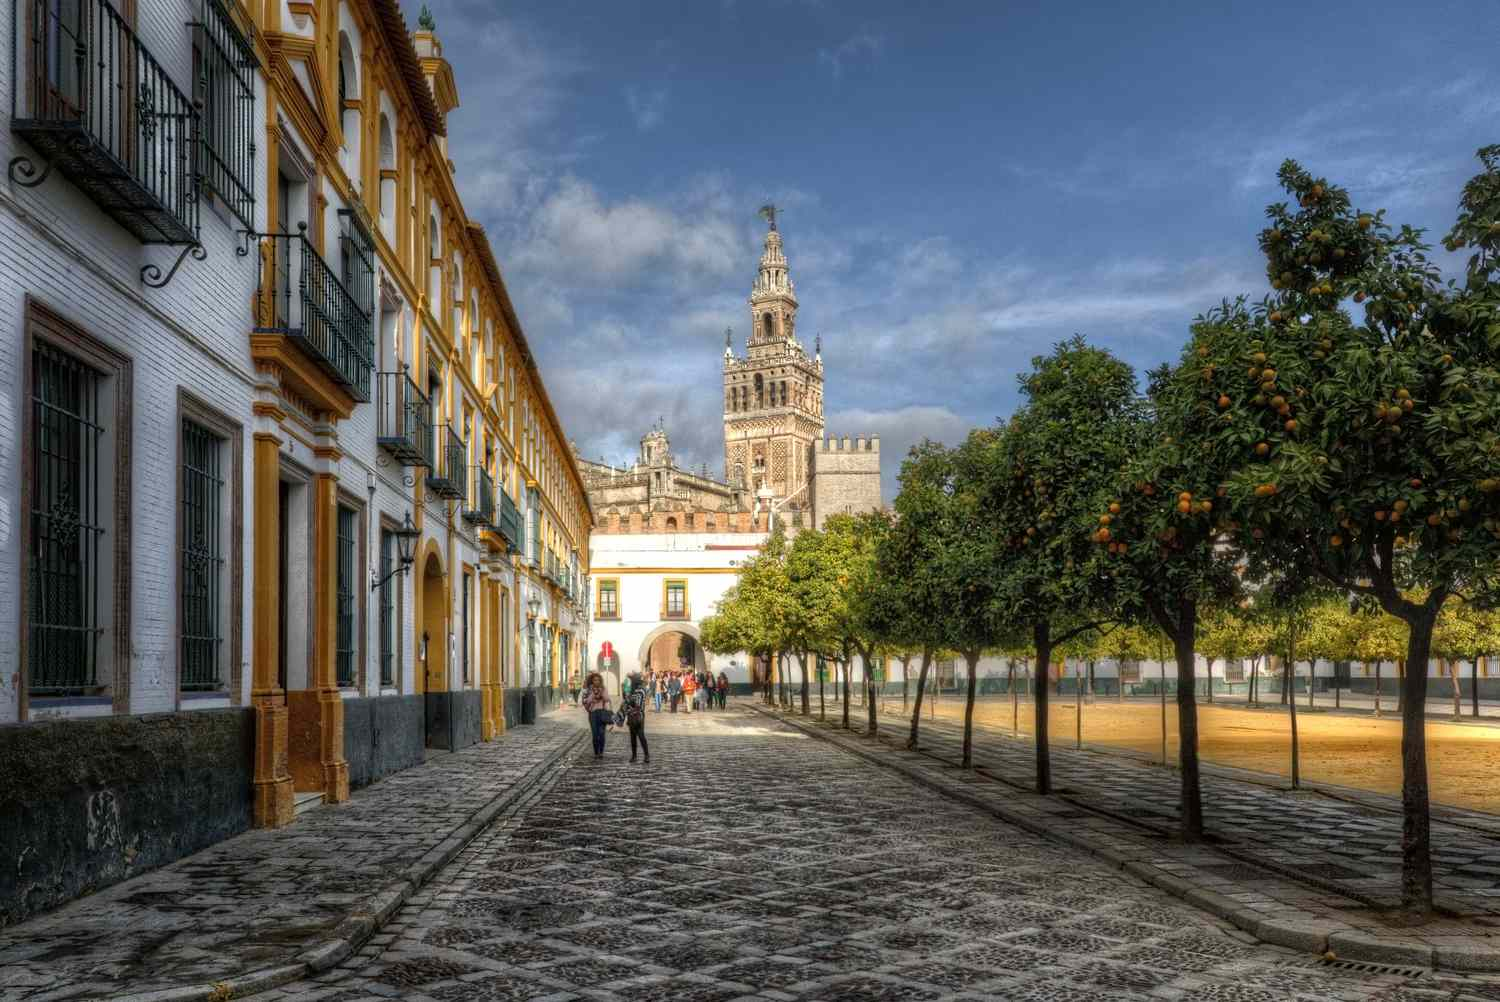 View of the Giralda and the Seville Cathedral